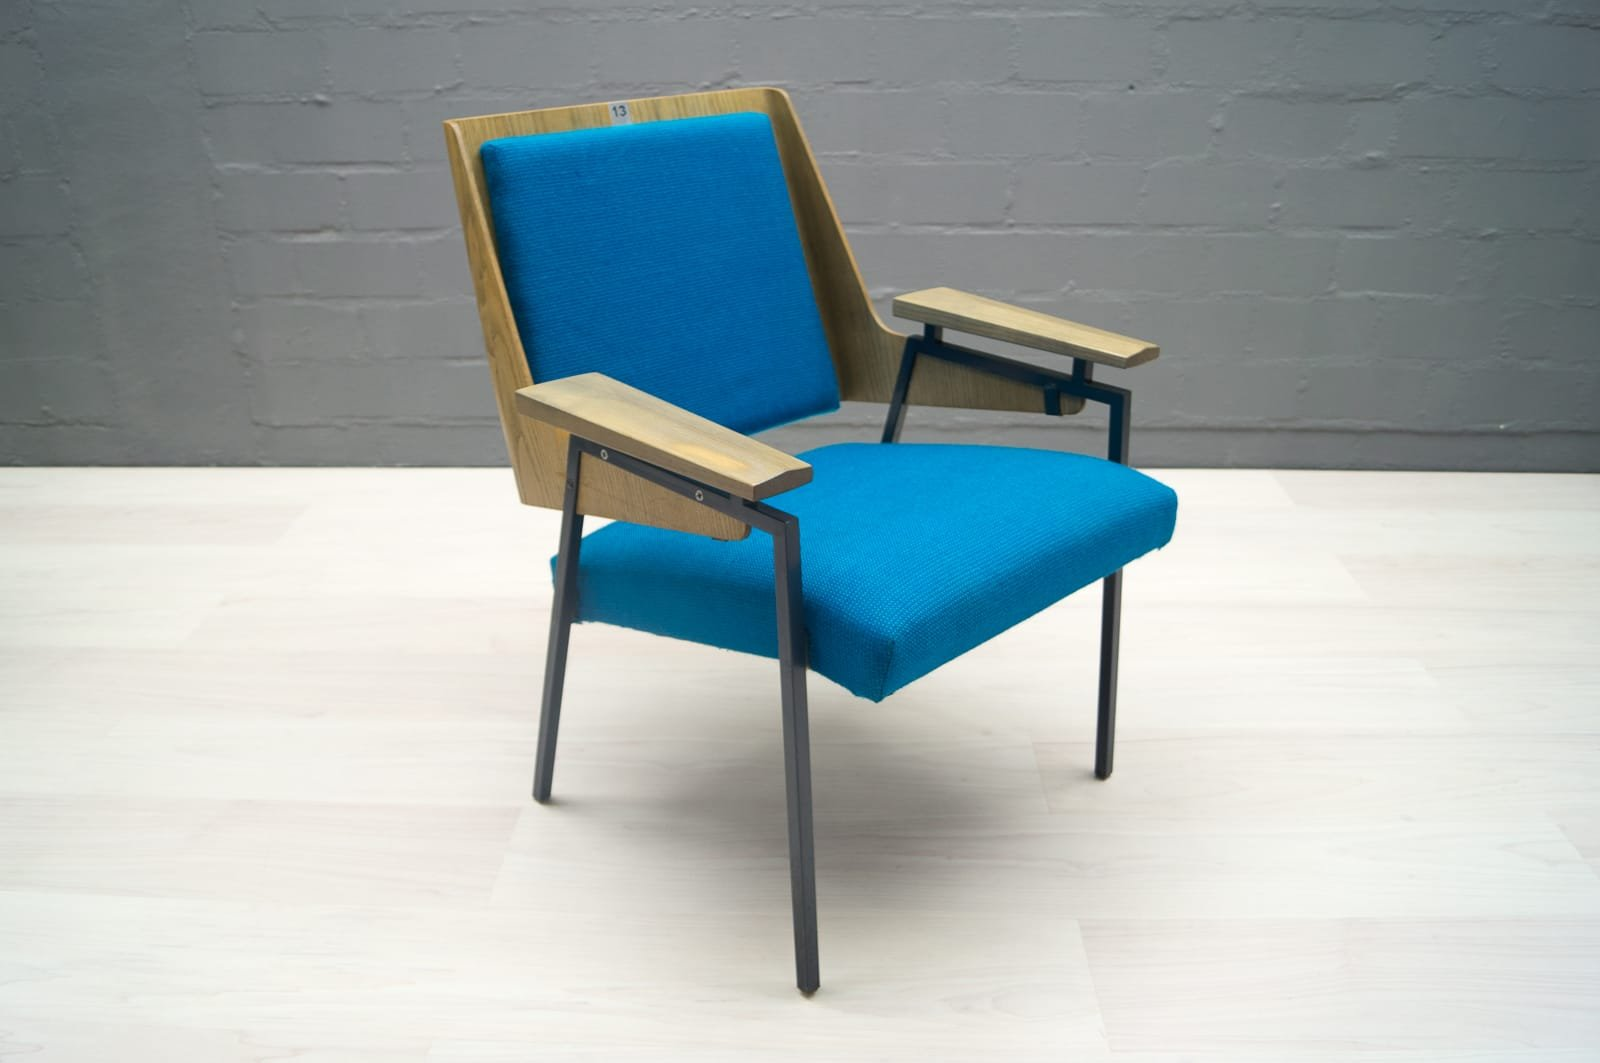 mid century armchair by wunibald puchner for the meistersingerhalle in n rnberg 1958 for sale. Black Bedroom Furniture Sets. Home Design Ideas